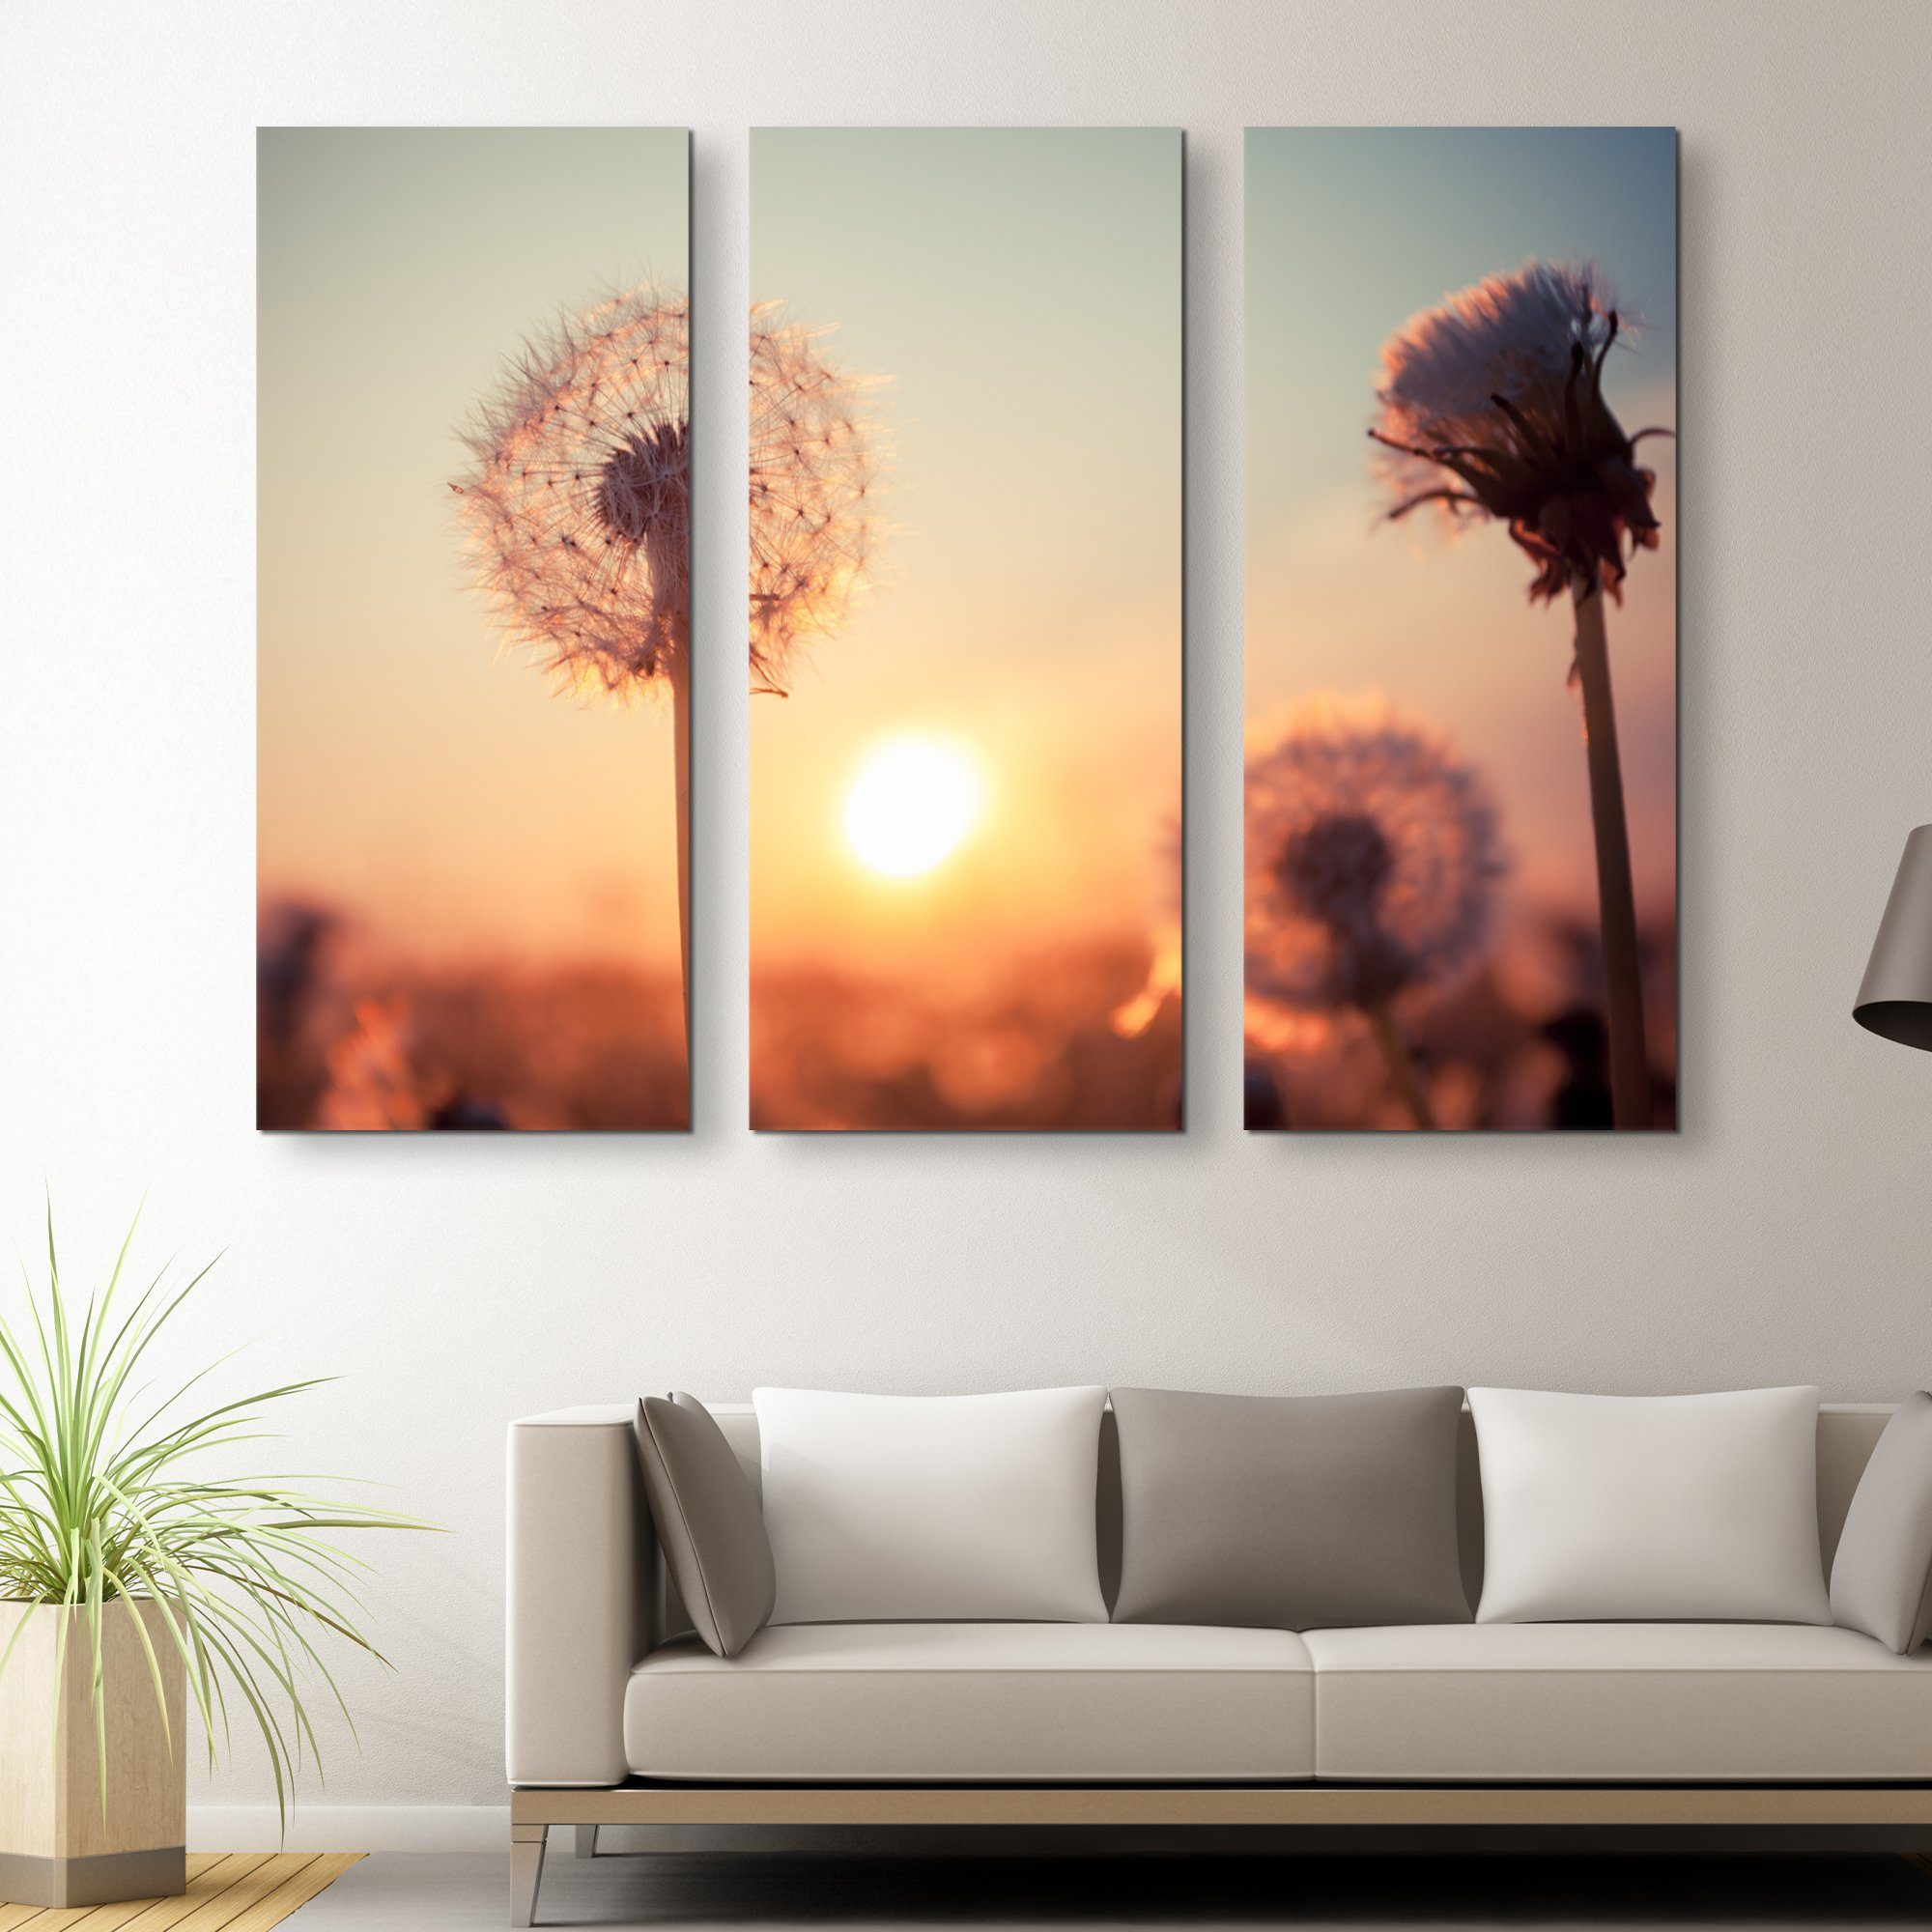 3 piece Dandelions at Sunset wall art